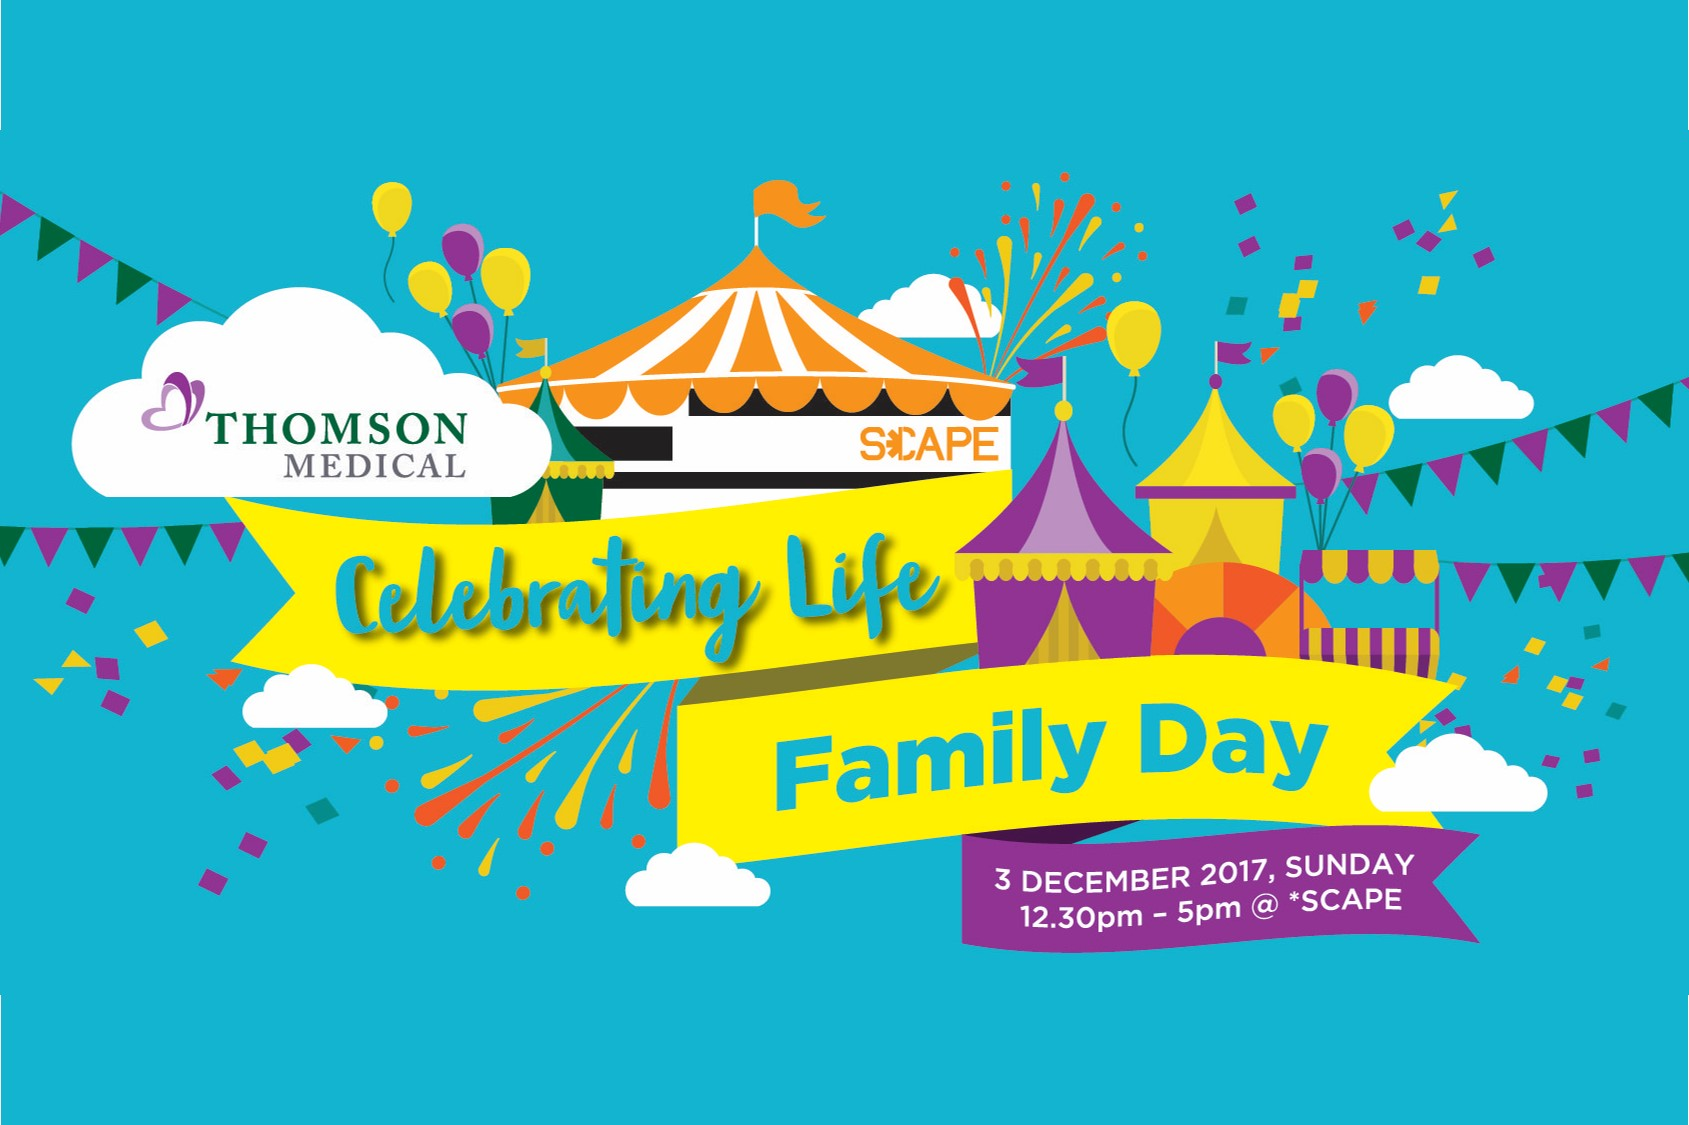 Thomson Celebrating Life Family Carnival 2017